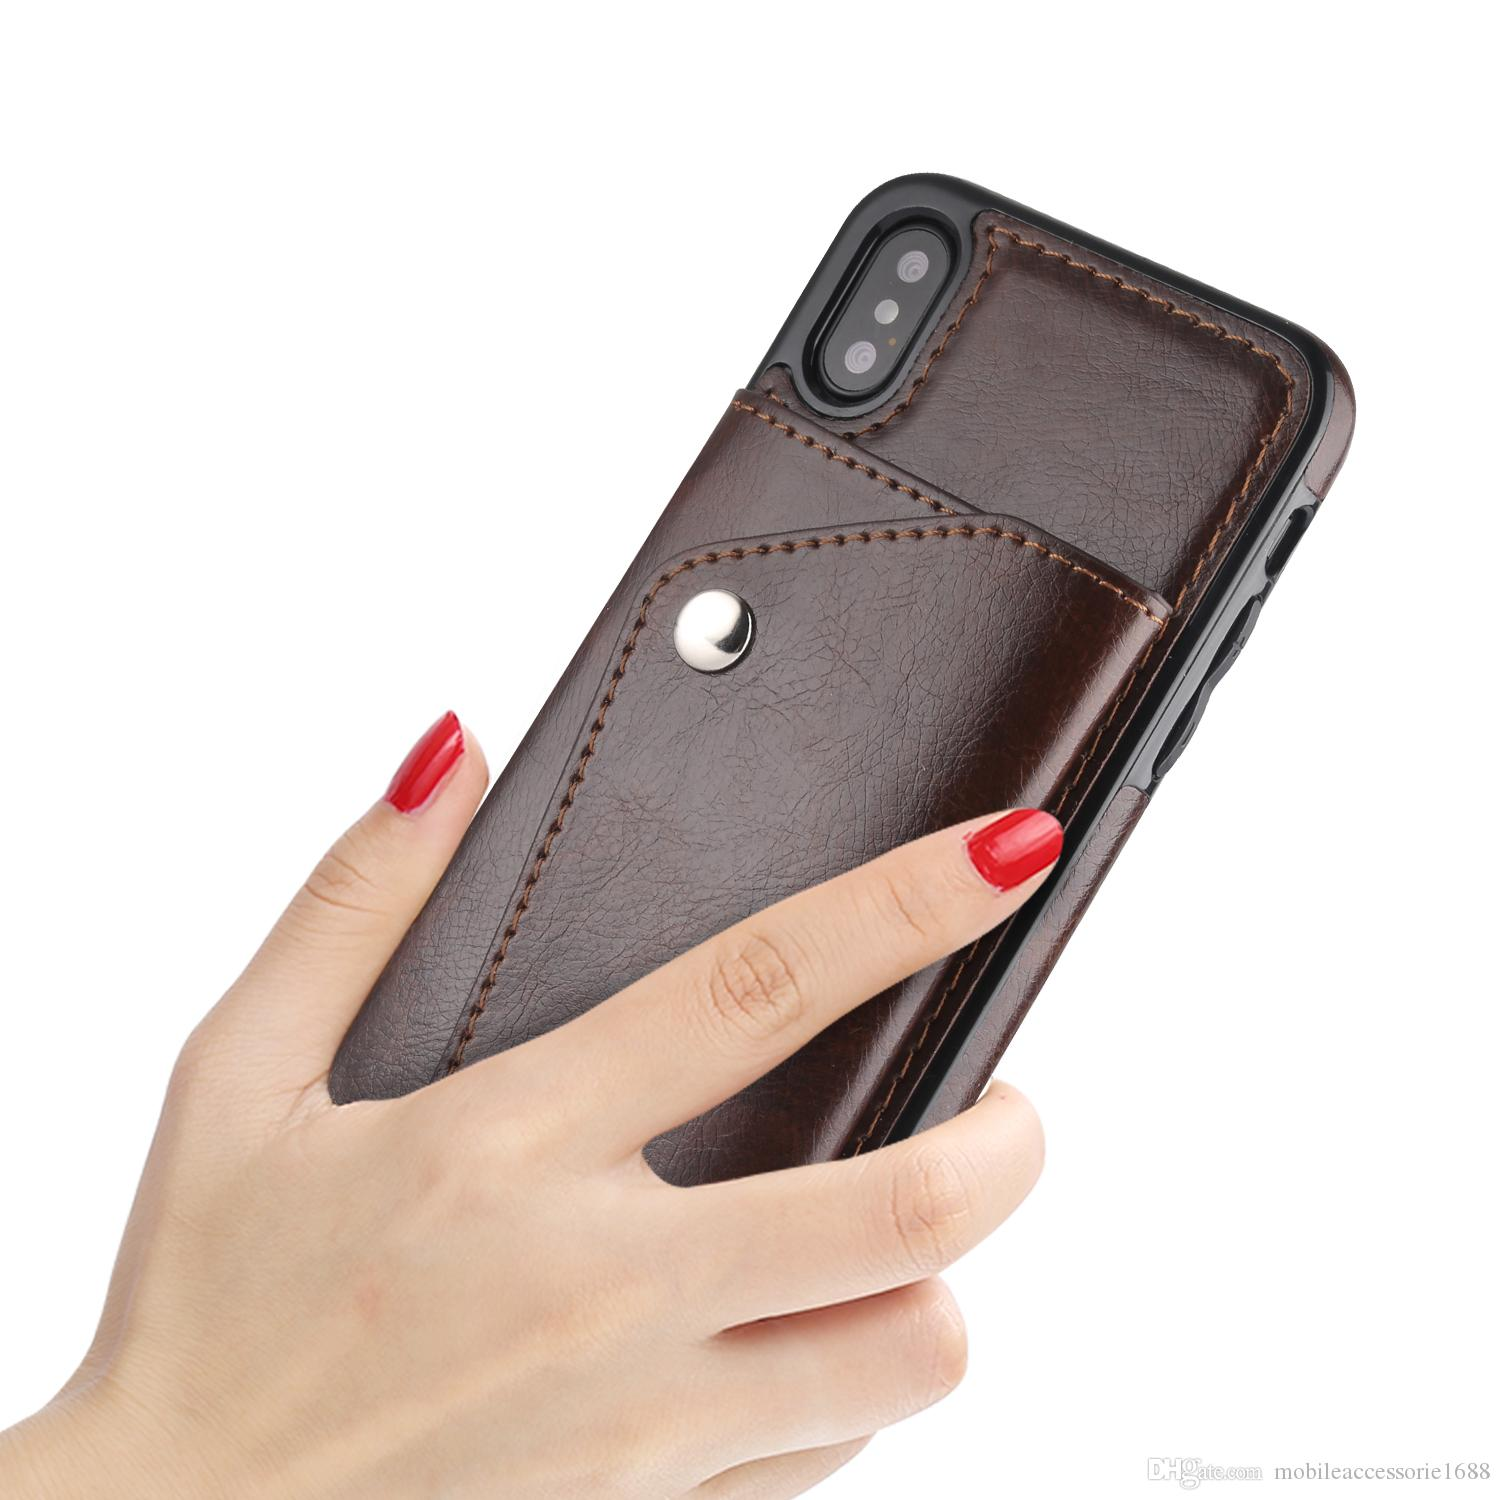 Make a phone case with your own hands